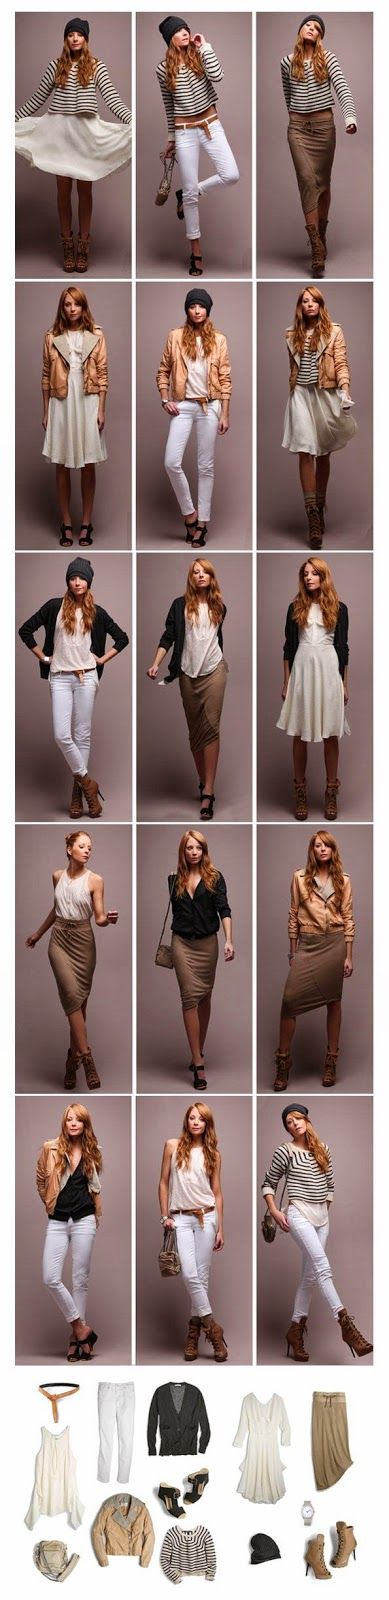 pre-spring minimalist 5 piece french capsule wardrobe / Becoming Minimalist Lola